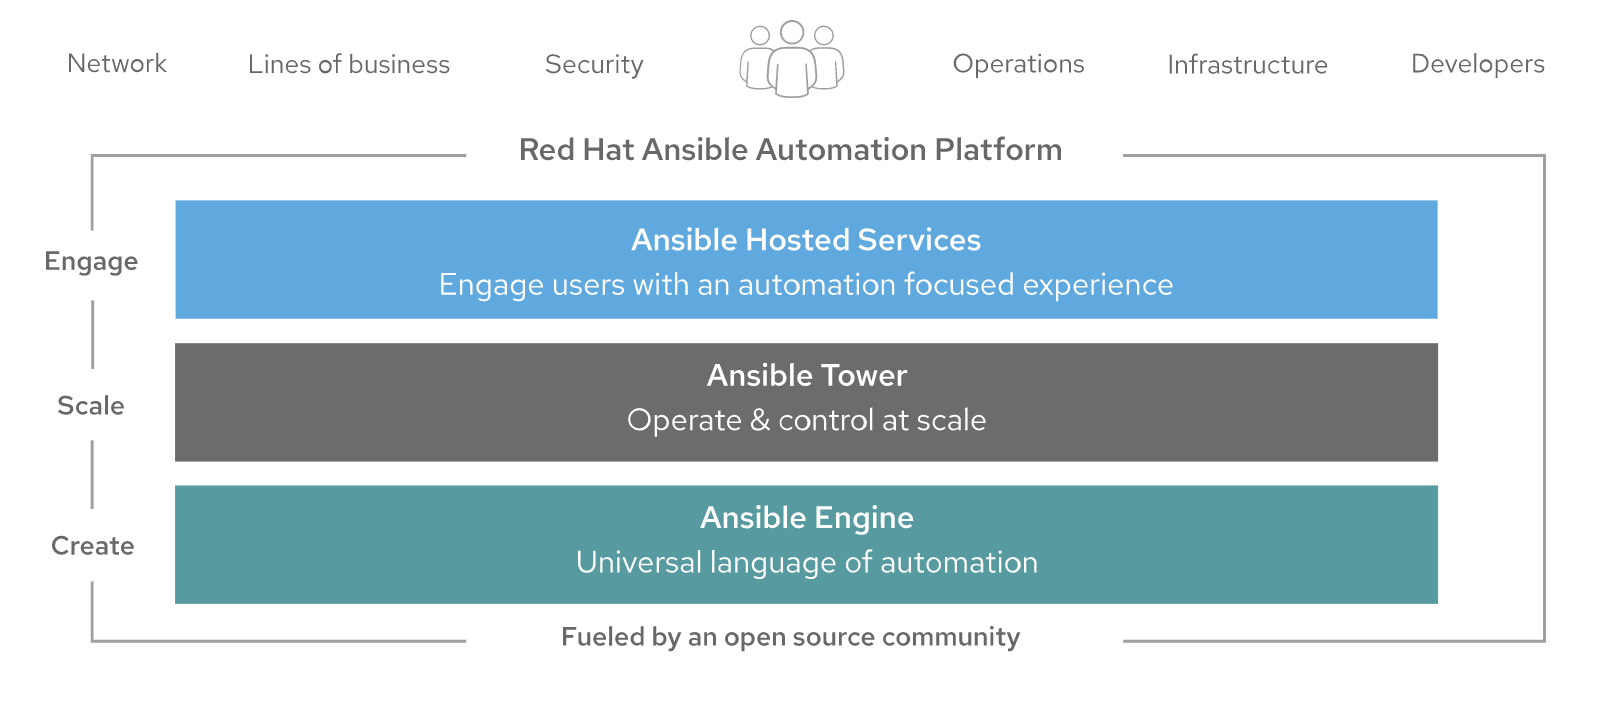 10 ways to automate Windows admin tasks using Red Hat Ansible Automation Platform